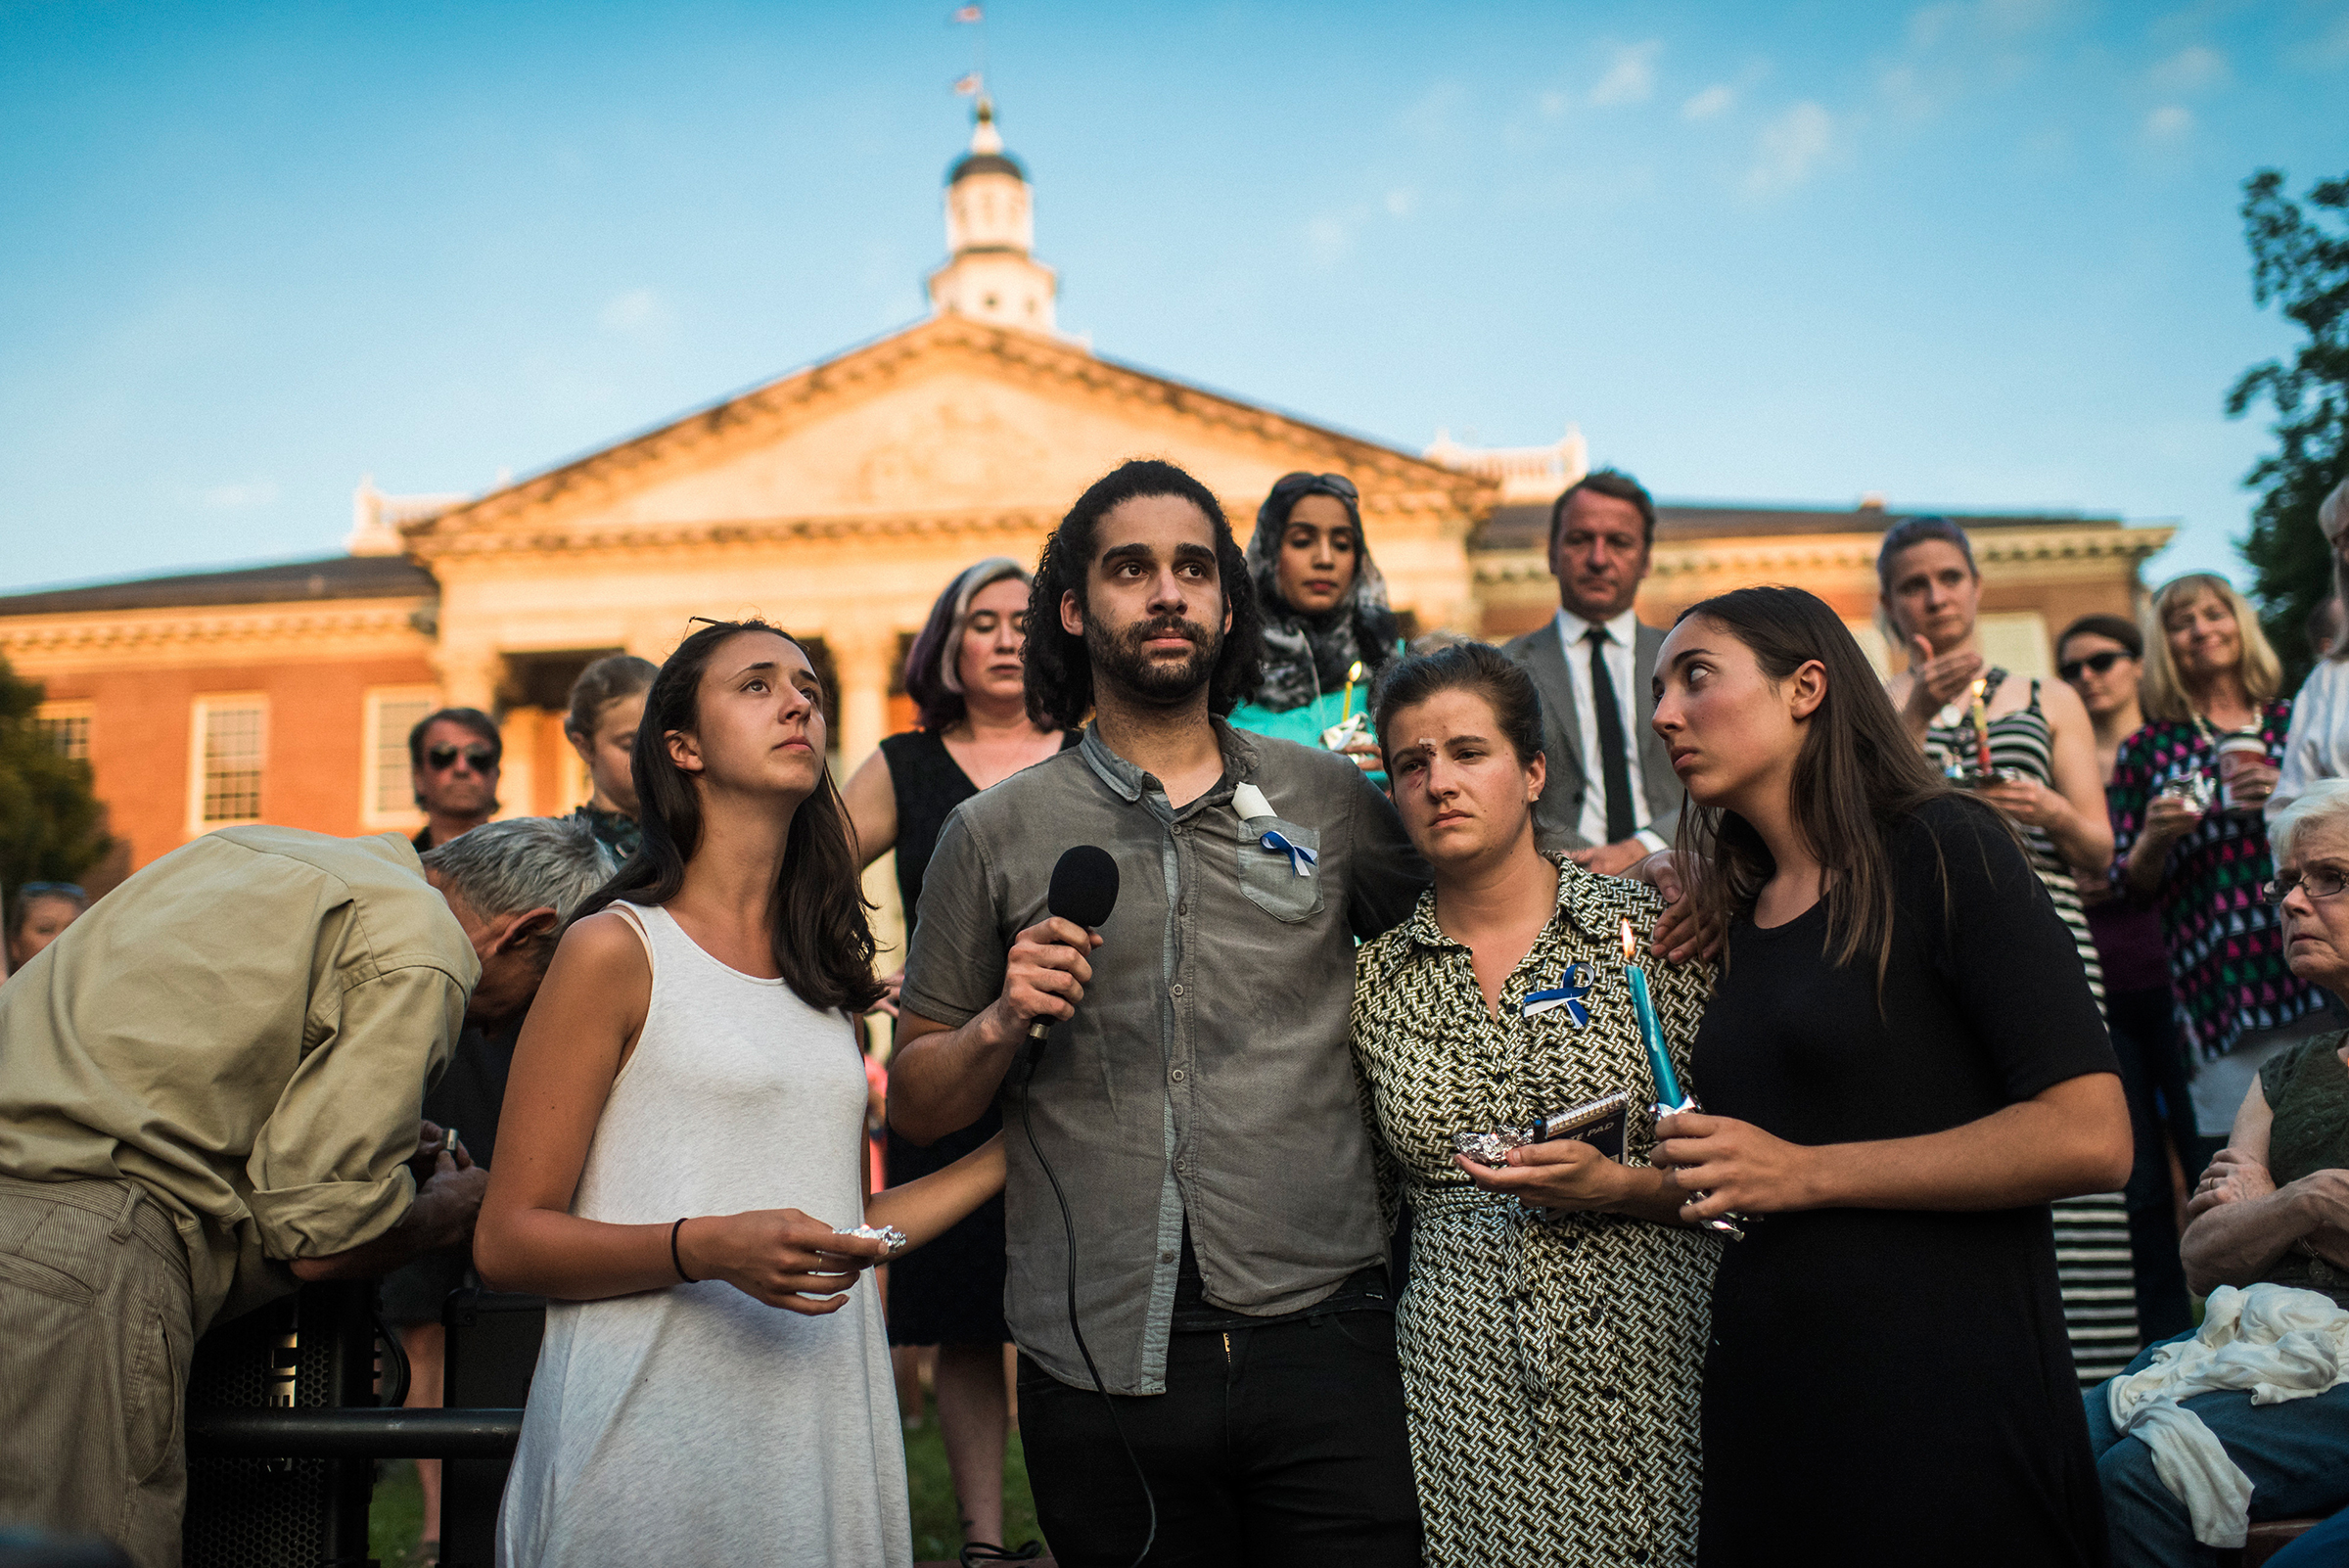 From left: Danielle Ohl, Phil Davis, Rachael Pacella and Selene San Felice—reporters at the Capital Gazette—address the crowd during a June 29, 2018, vigil for the victims of the newsroom shooting in Annapolis, Md.